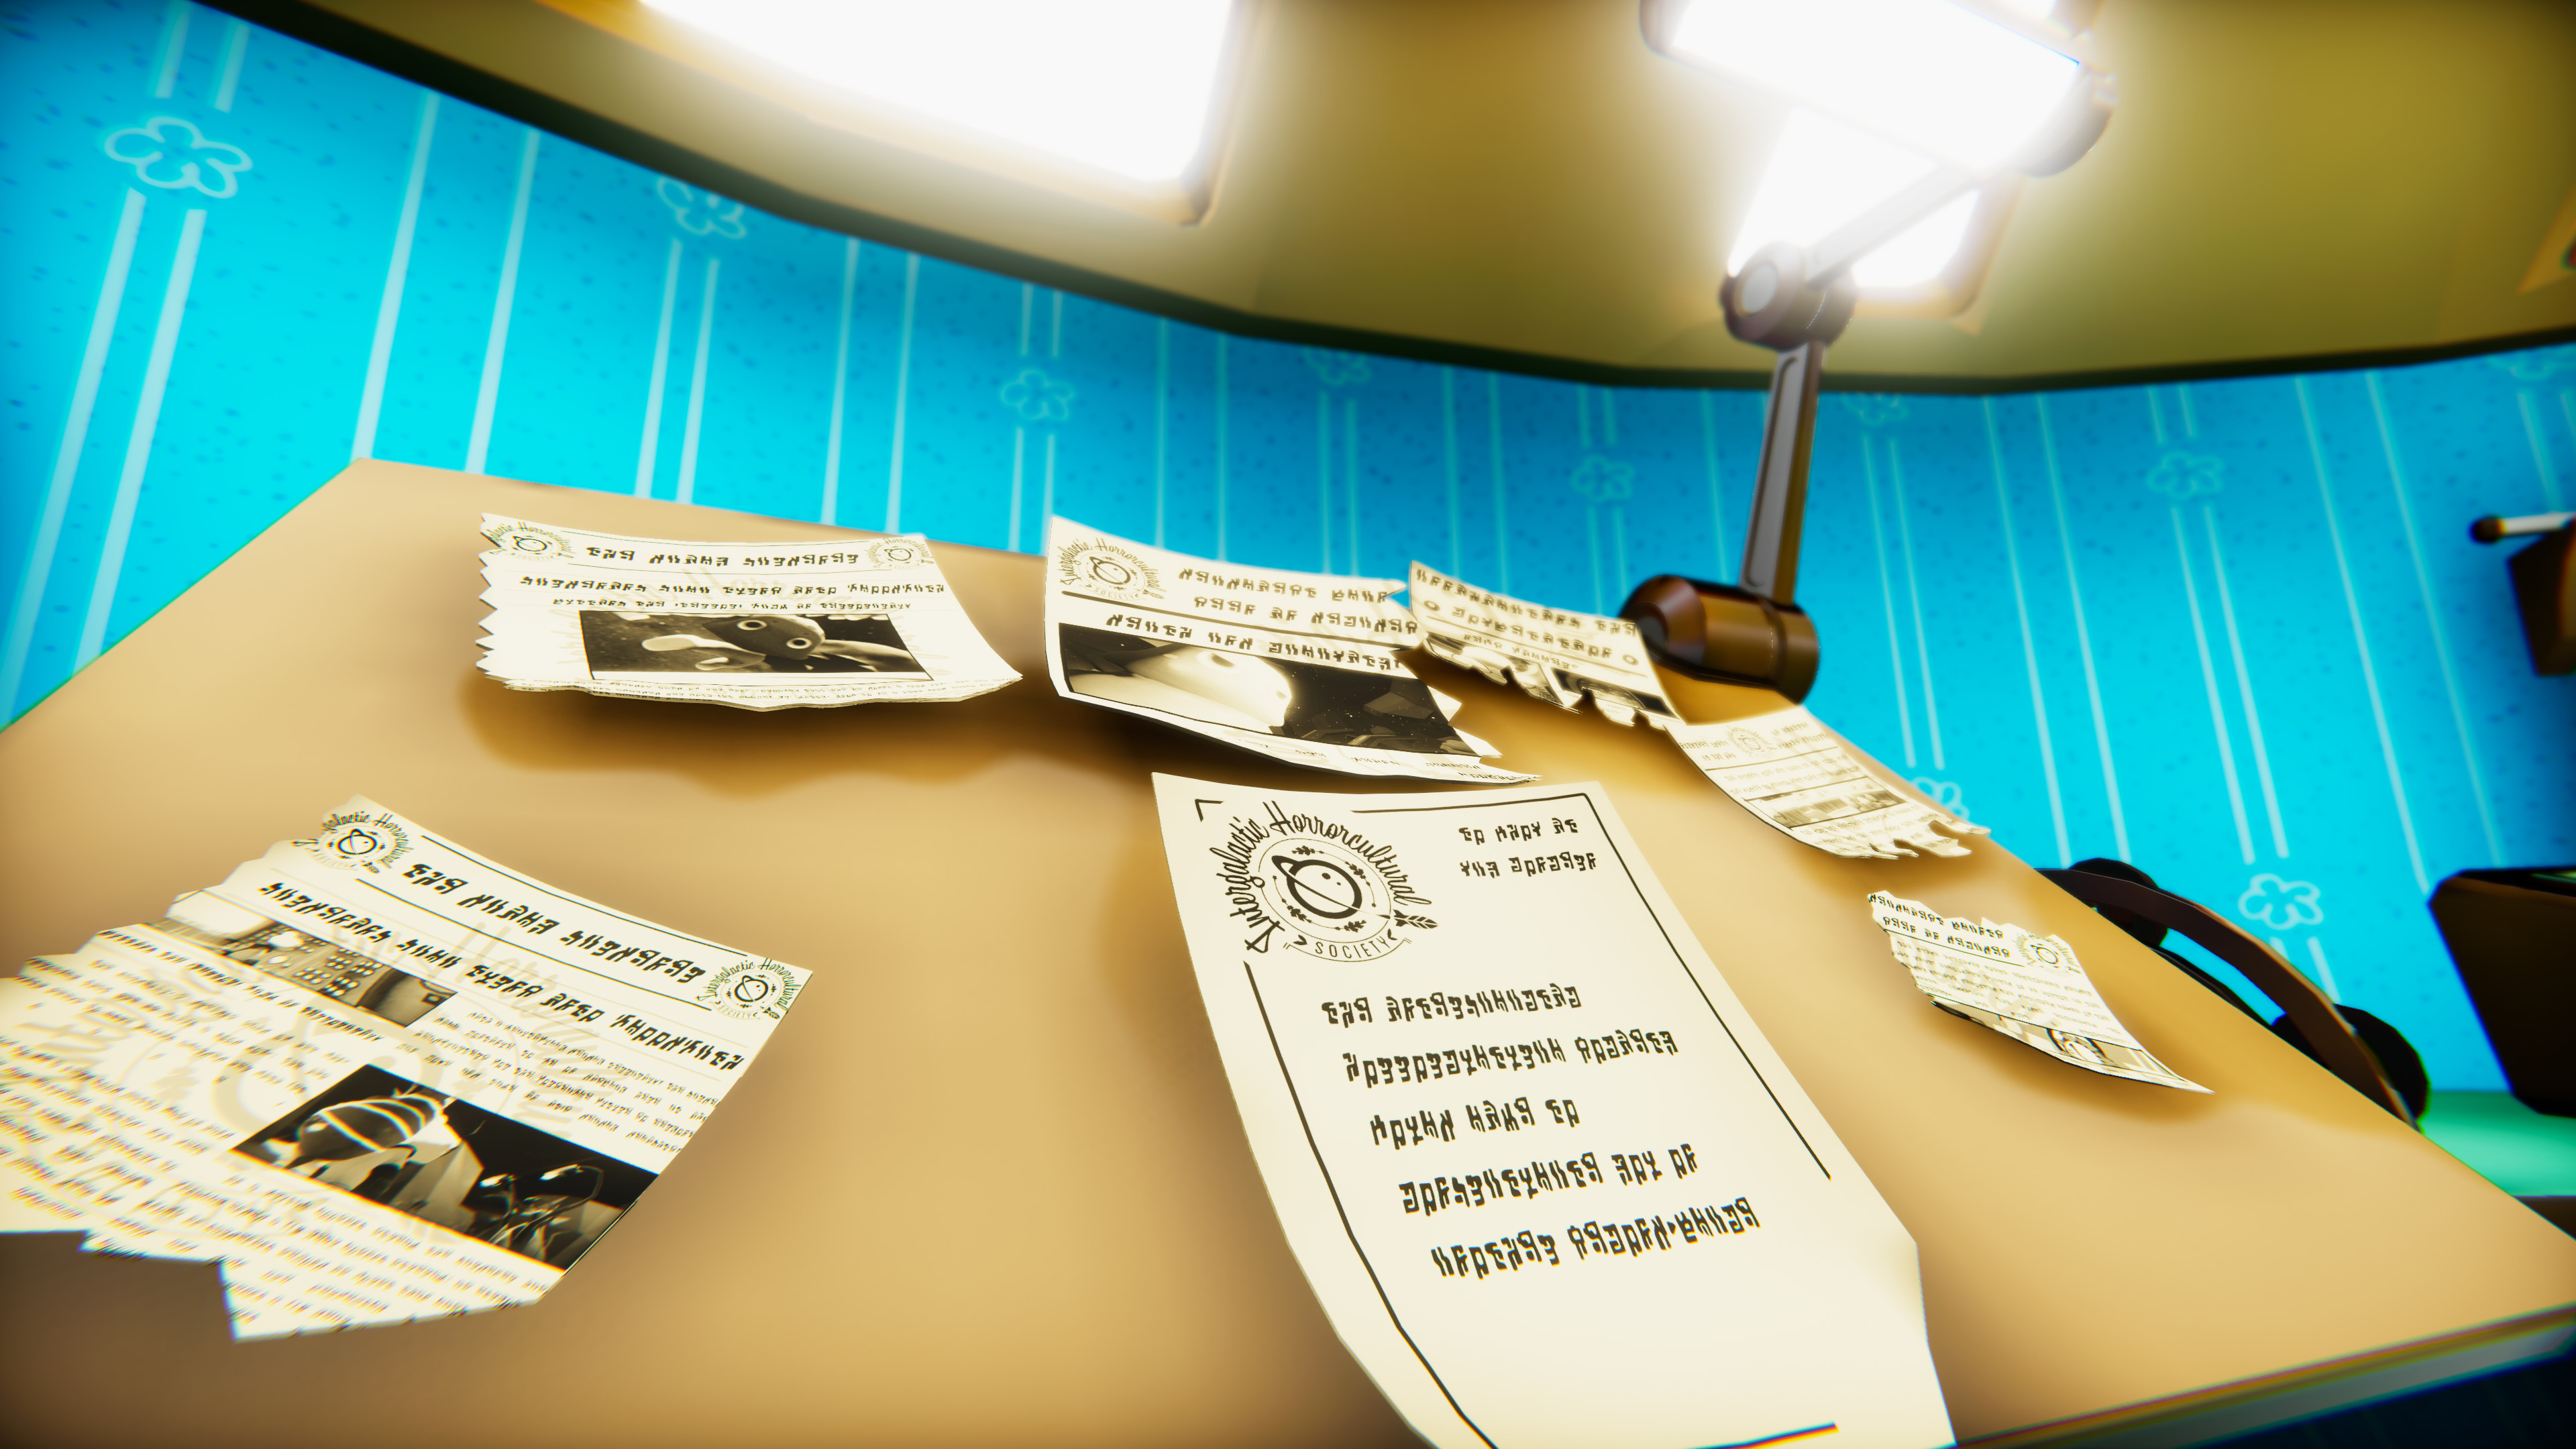 We had an assortment of information to deliver visually, much of it was done through paper interactions.